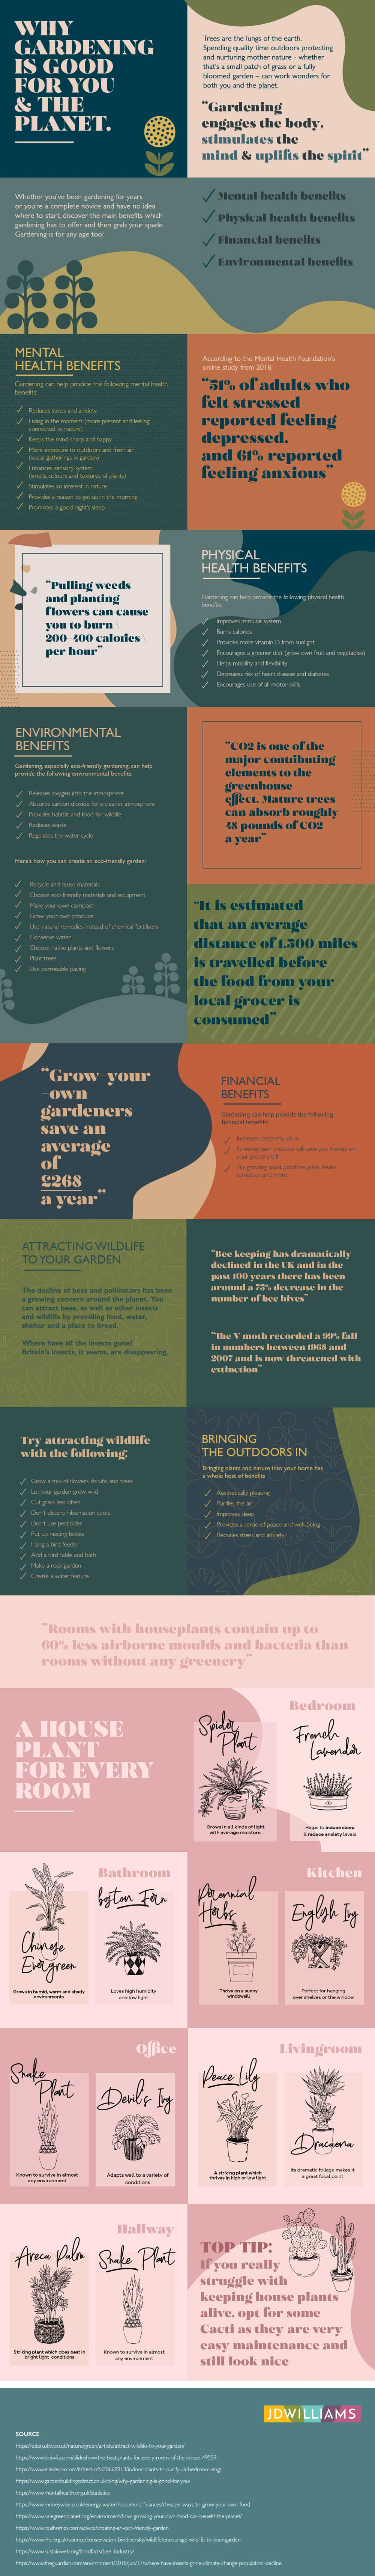 Why gardening is good for you and the planet